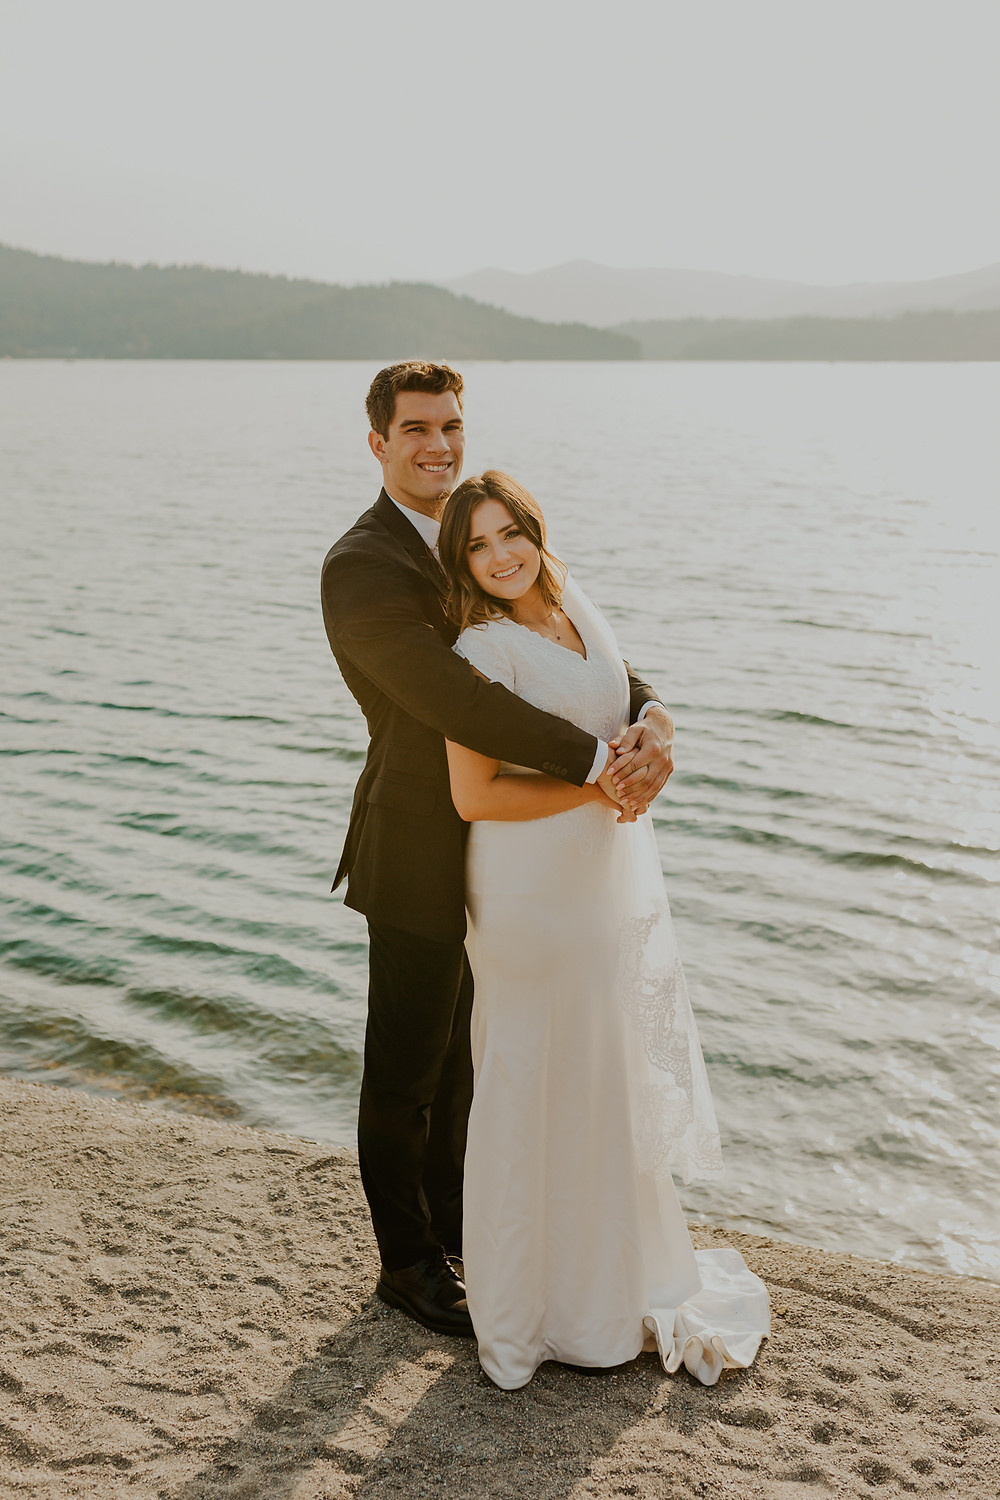 dreamy sunset lake bridals on lake coeurdalene north idaho, bride and groom adventure bridals on the water golden hour sunset dock and wake surfing photos, bridals on a boat